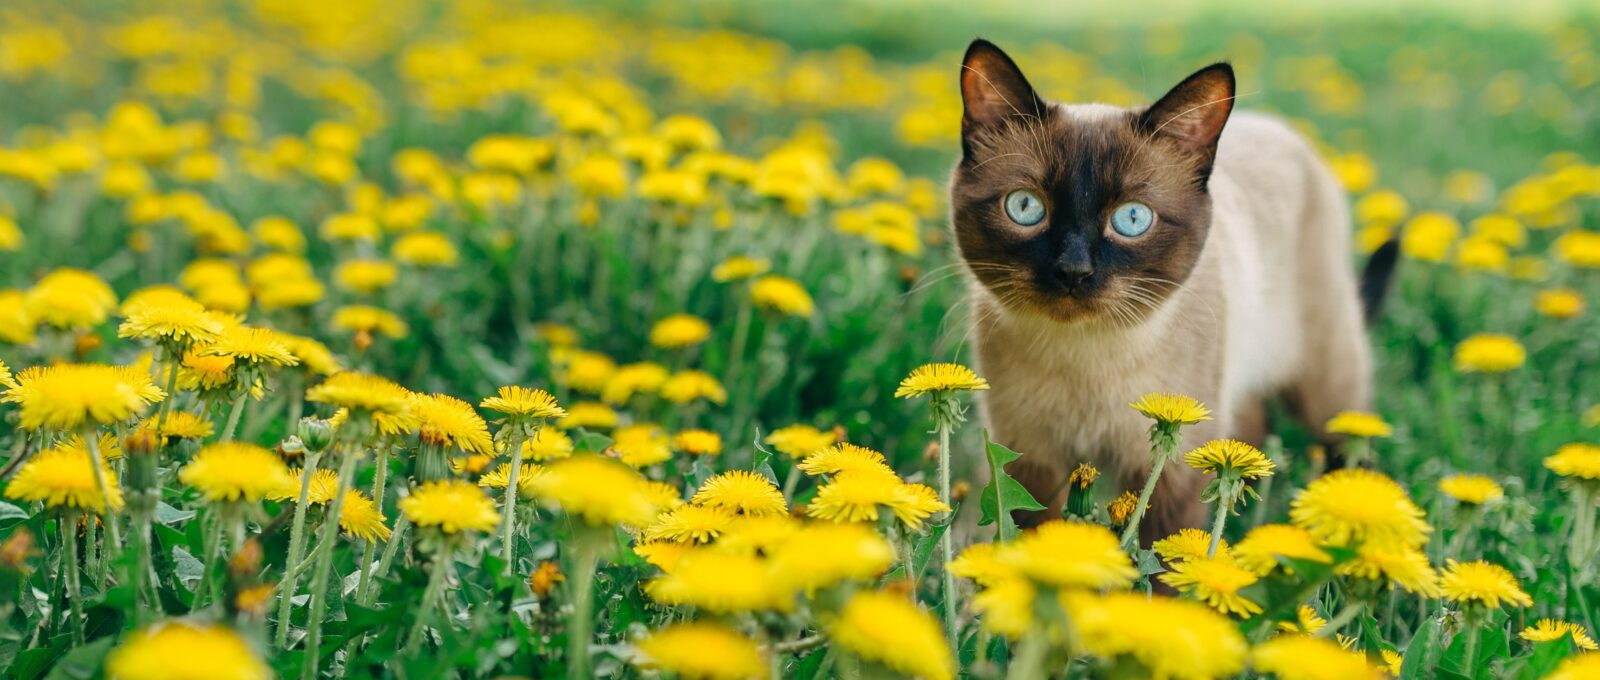 cat in field flowers